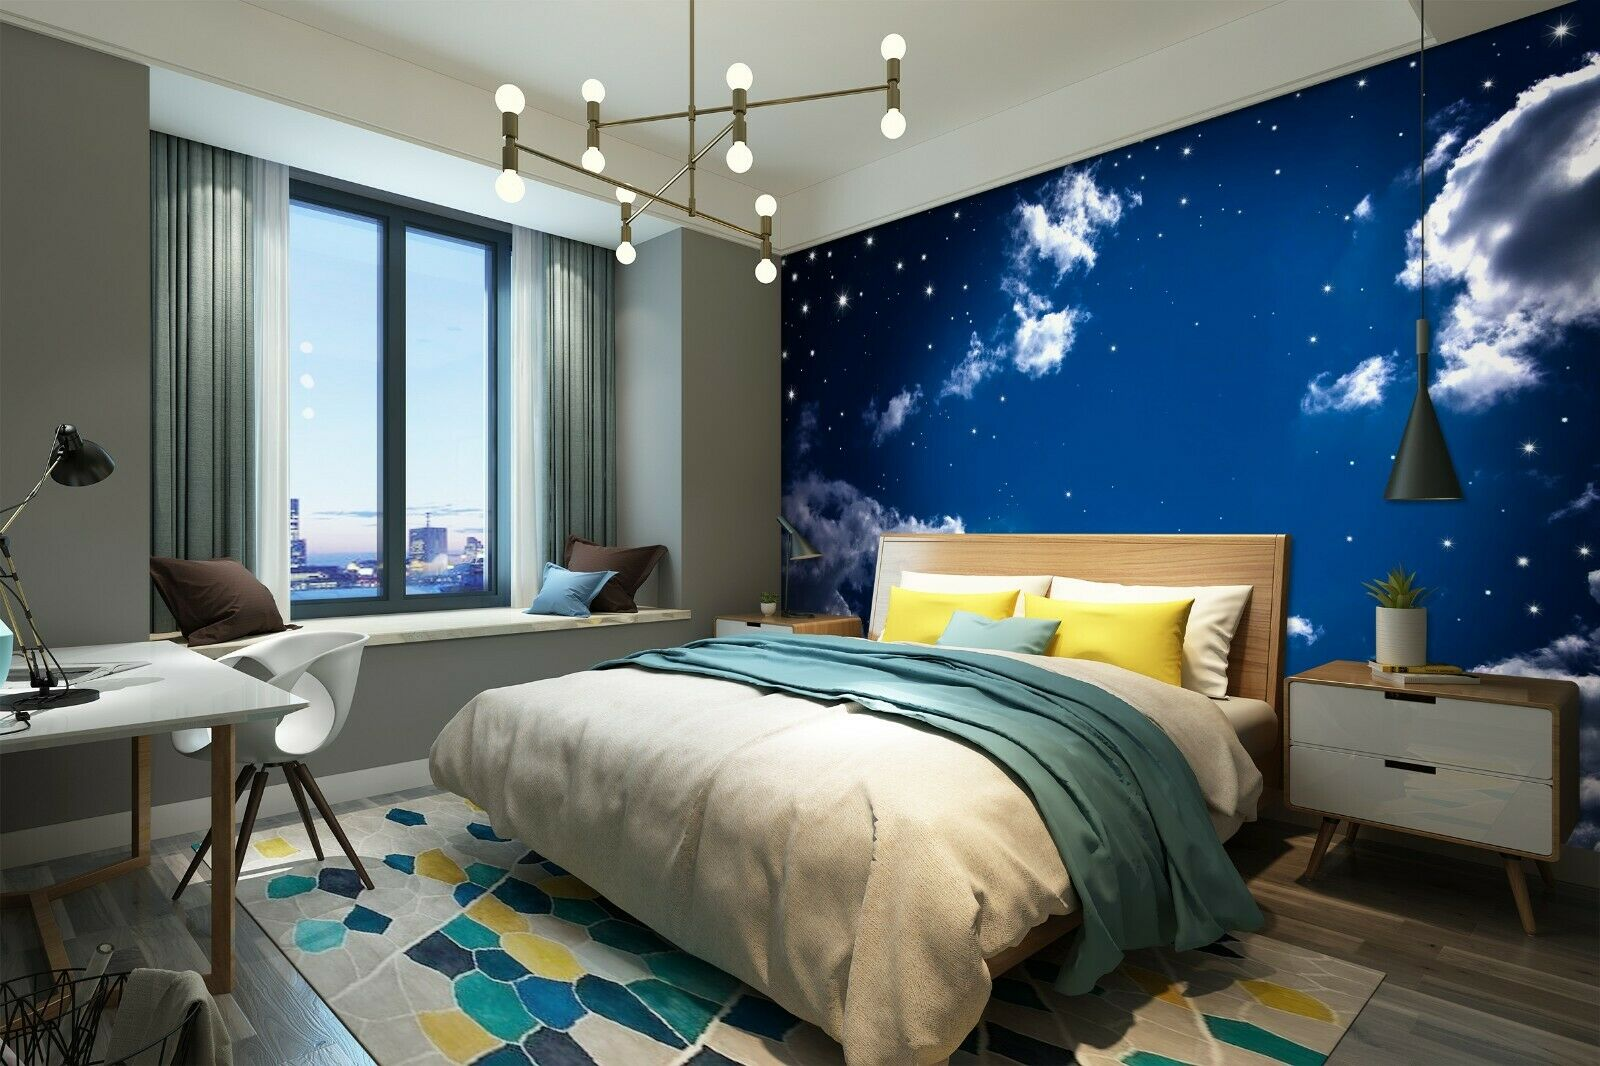 3D Night Starry Sky Clouds R1194 Wallpaper Wall Mural Self-adhesive Commerce Amy